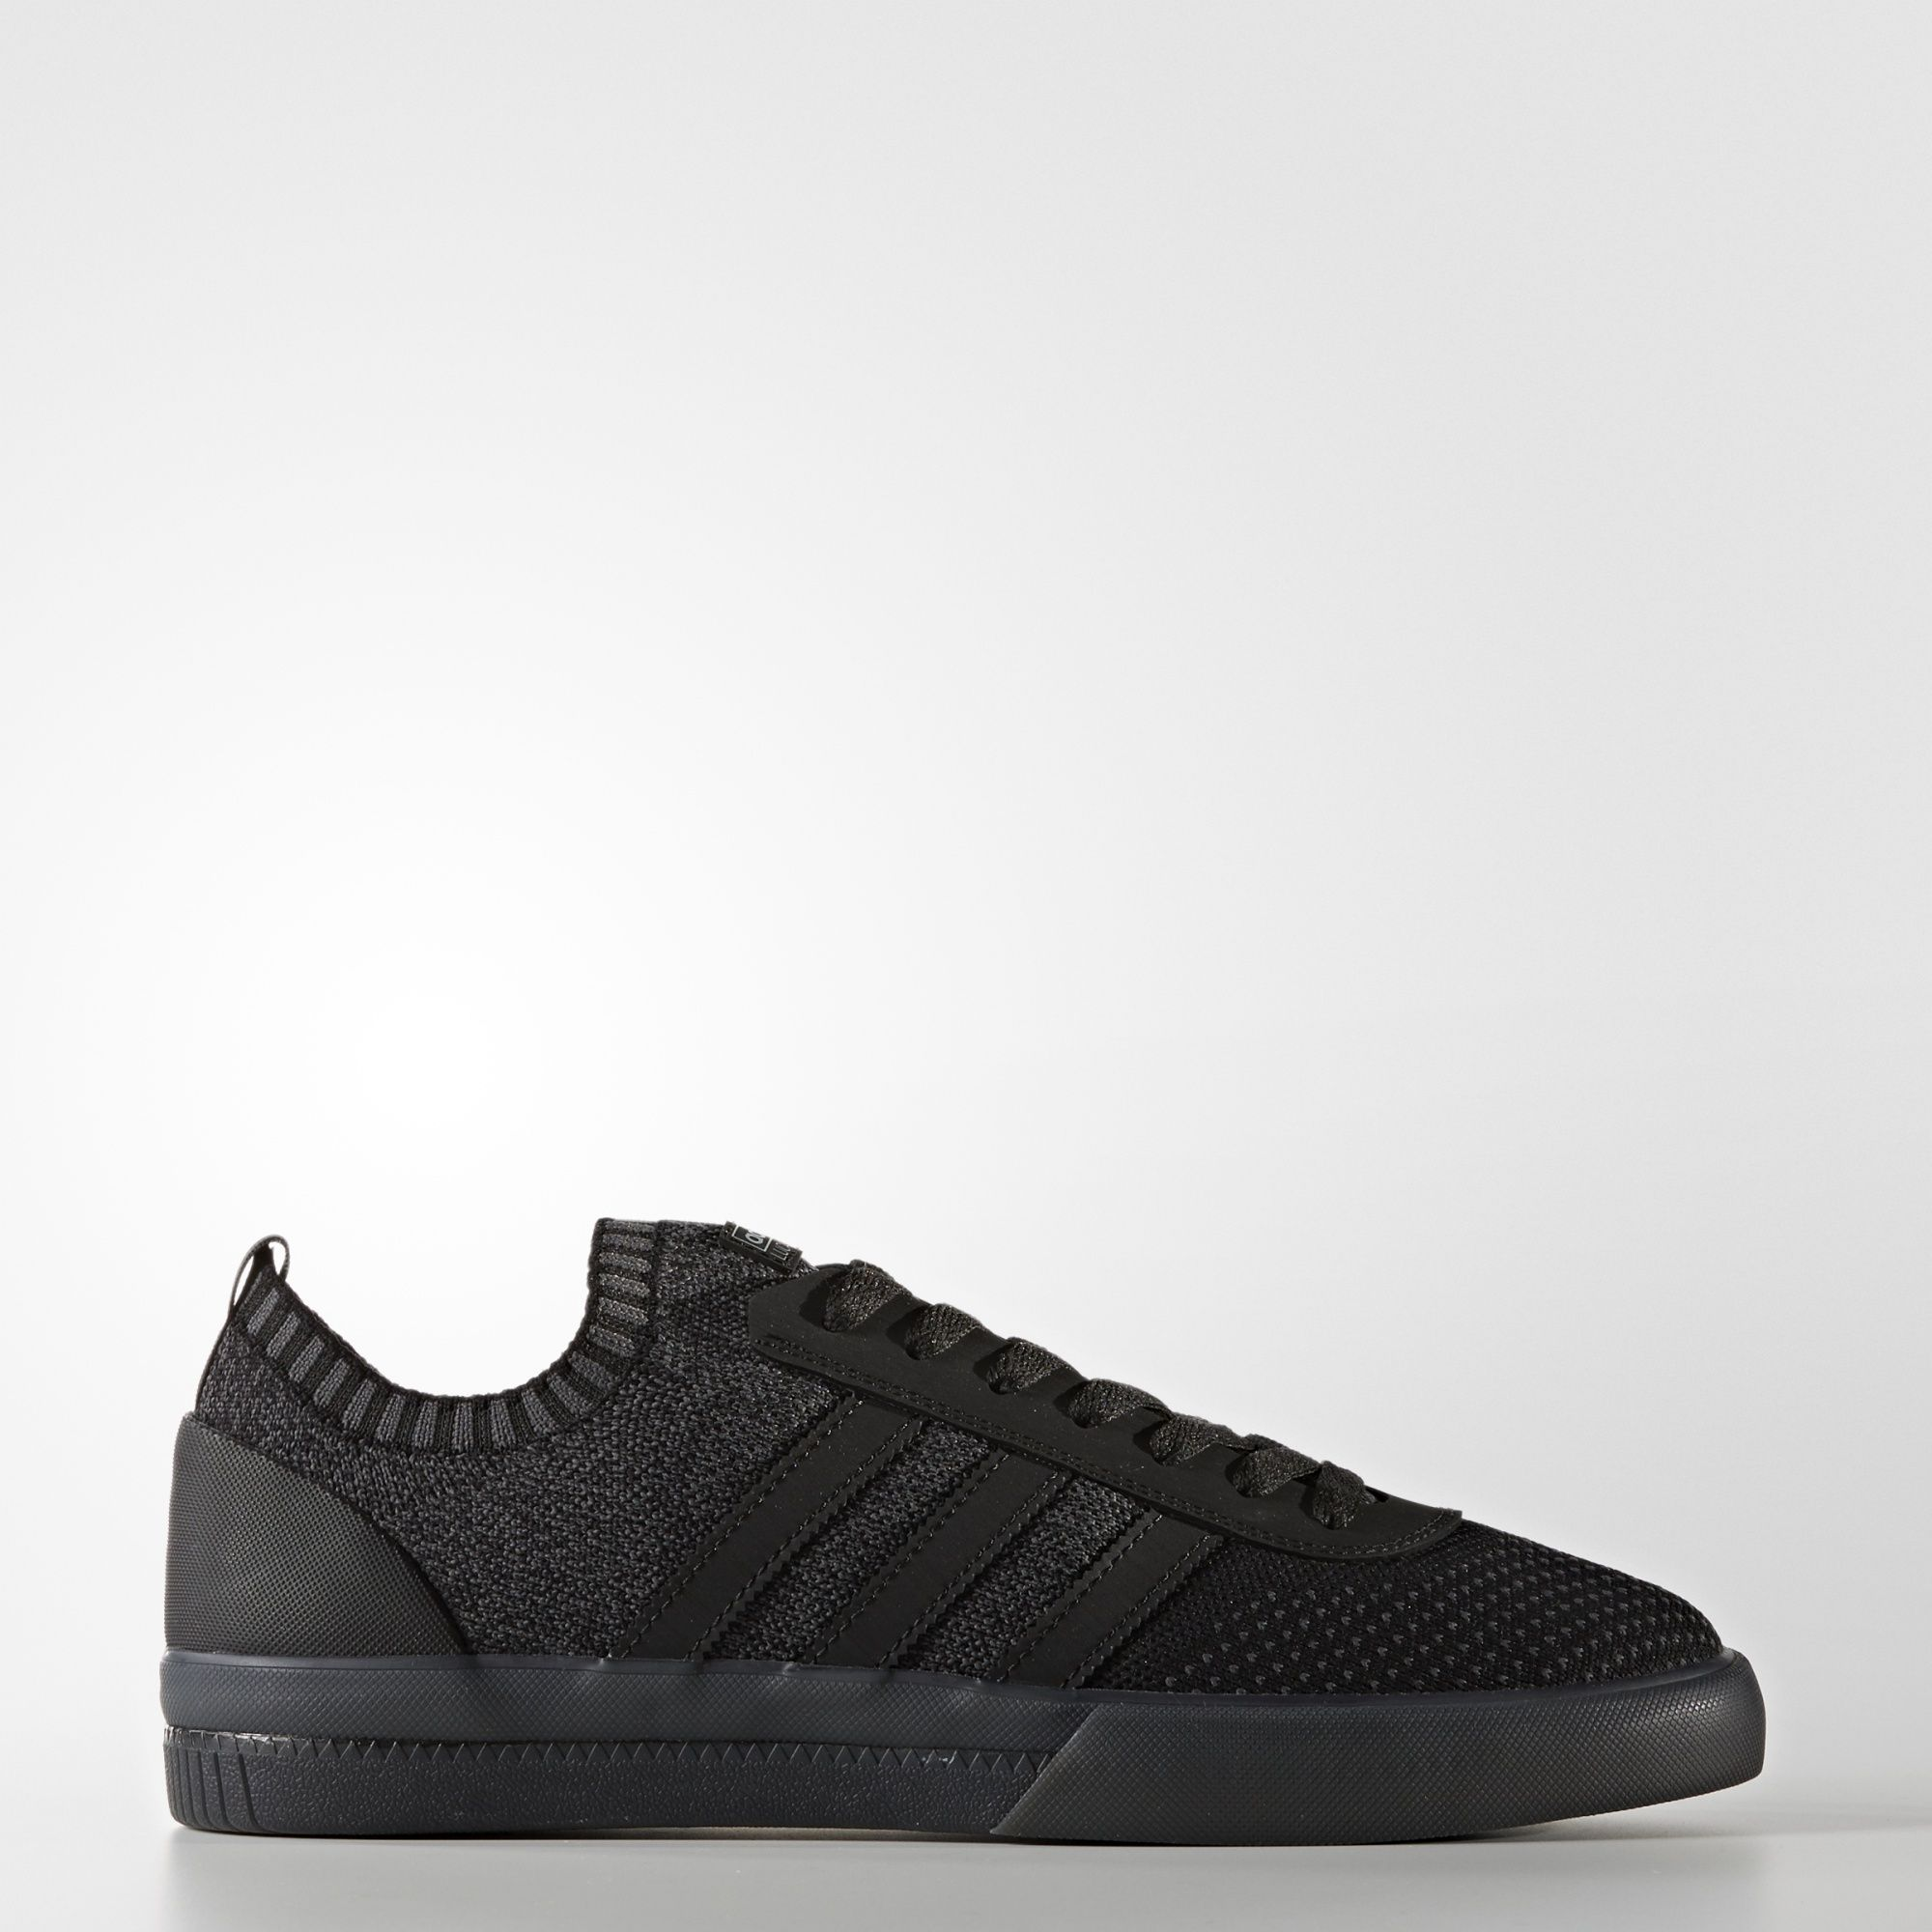 Lucas Puig's signature model, inspired by archival adidas